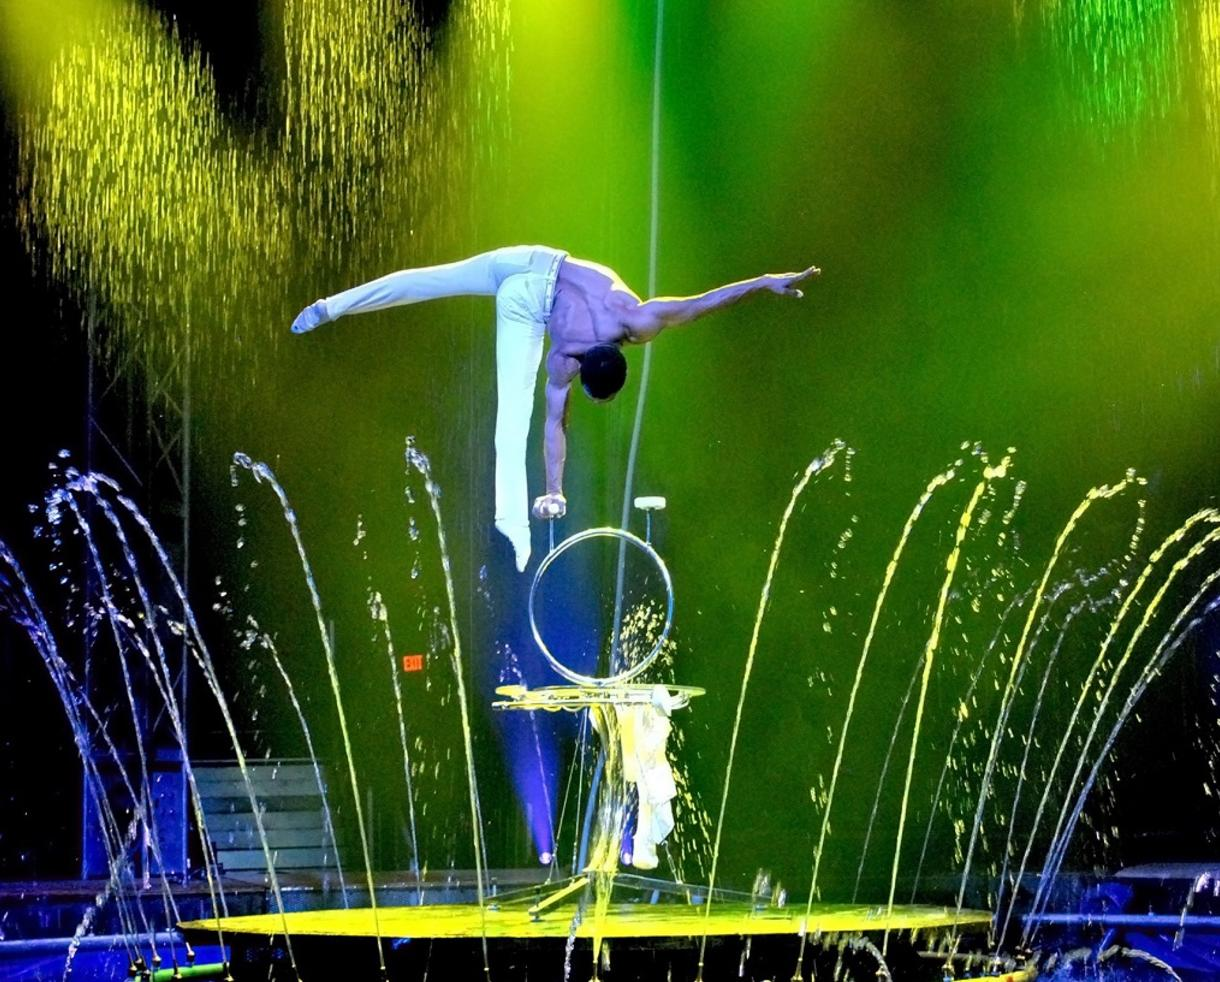 $10+ for NEW! Cirque Italia WATER CIRCUS - Woodbridge, VA (Up to 46% Off!)